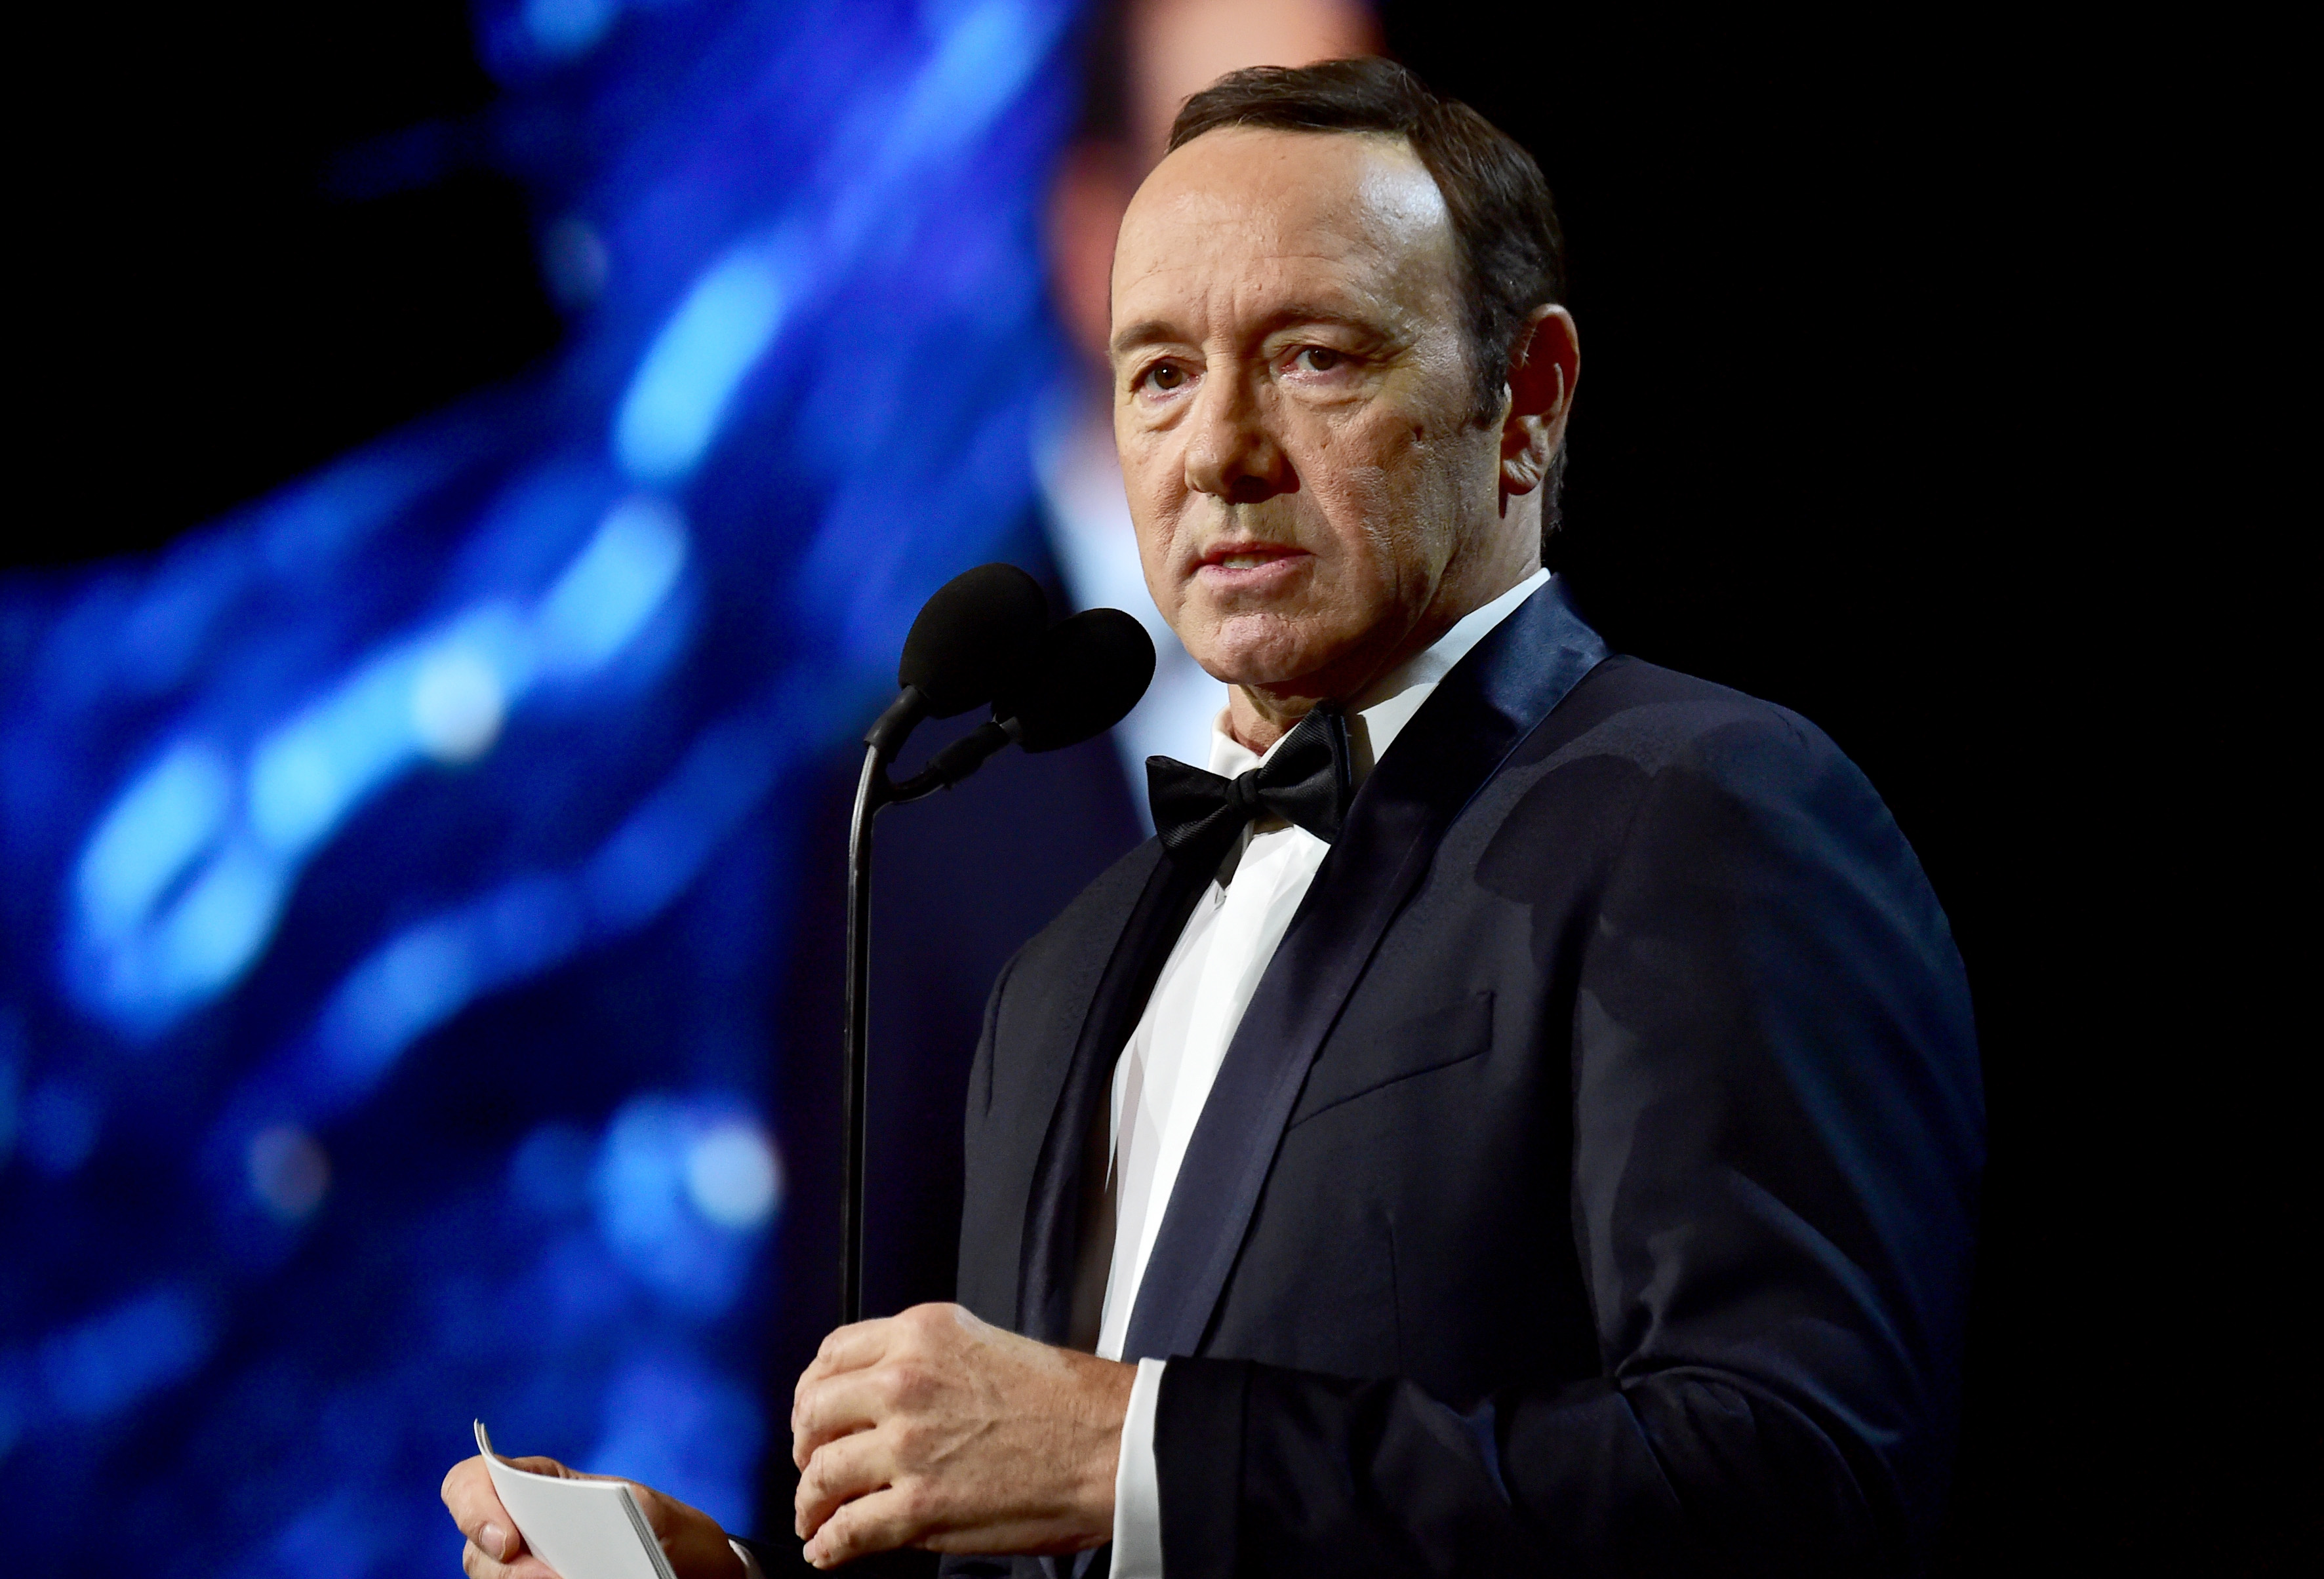 Kevin Spacey at the 2017 AMD British Academy Britannia Awards in Beverly Hills, Calif. on Oct. 27, 2017.